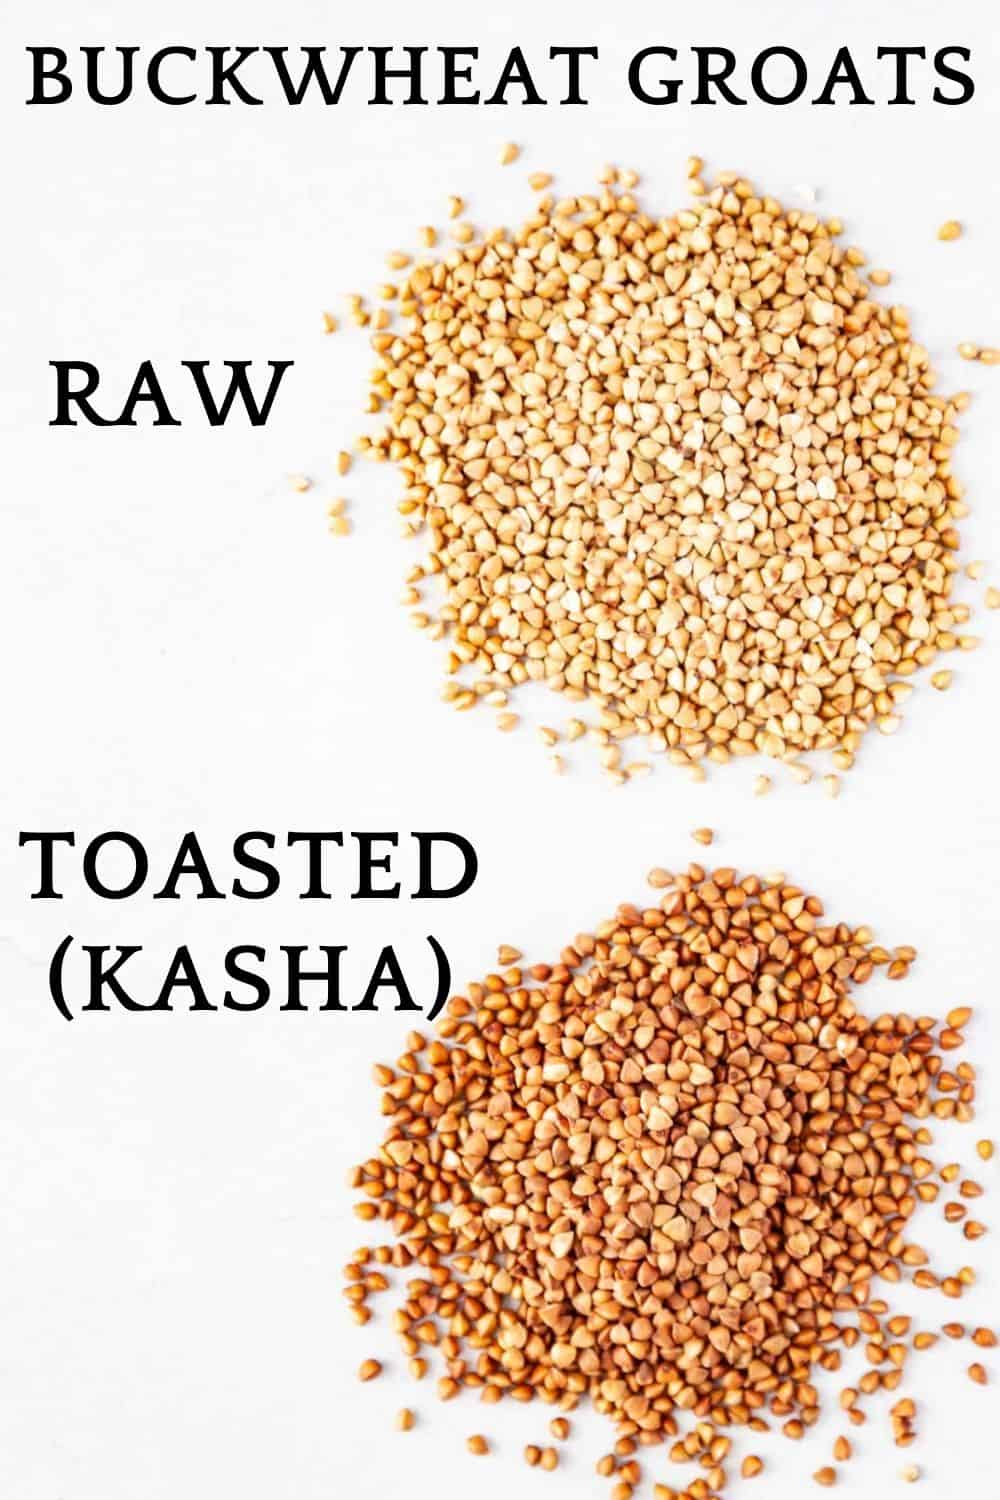 uncooked raw and toasted buckwheat groats